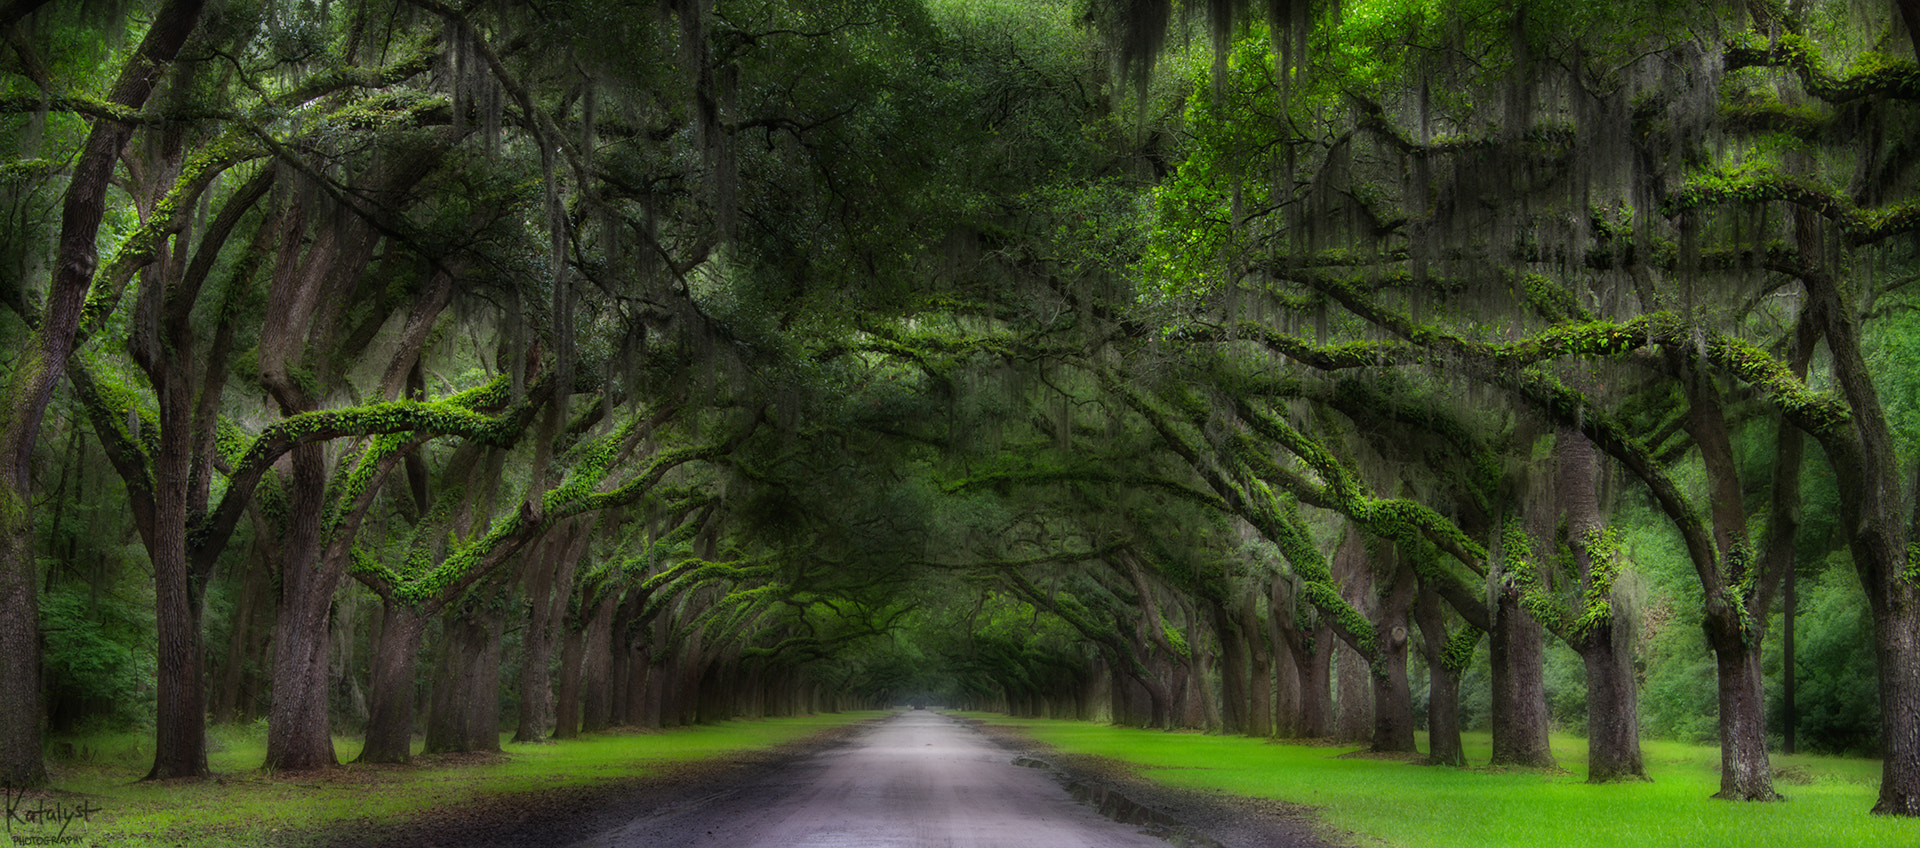 Photograph Enchanted Path by Long Weekend Photography on 500px